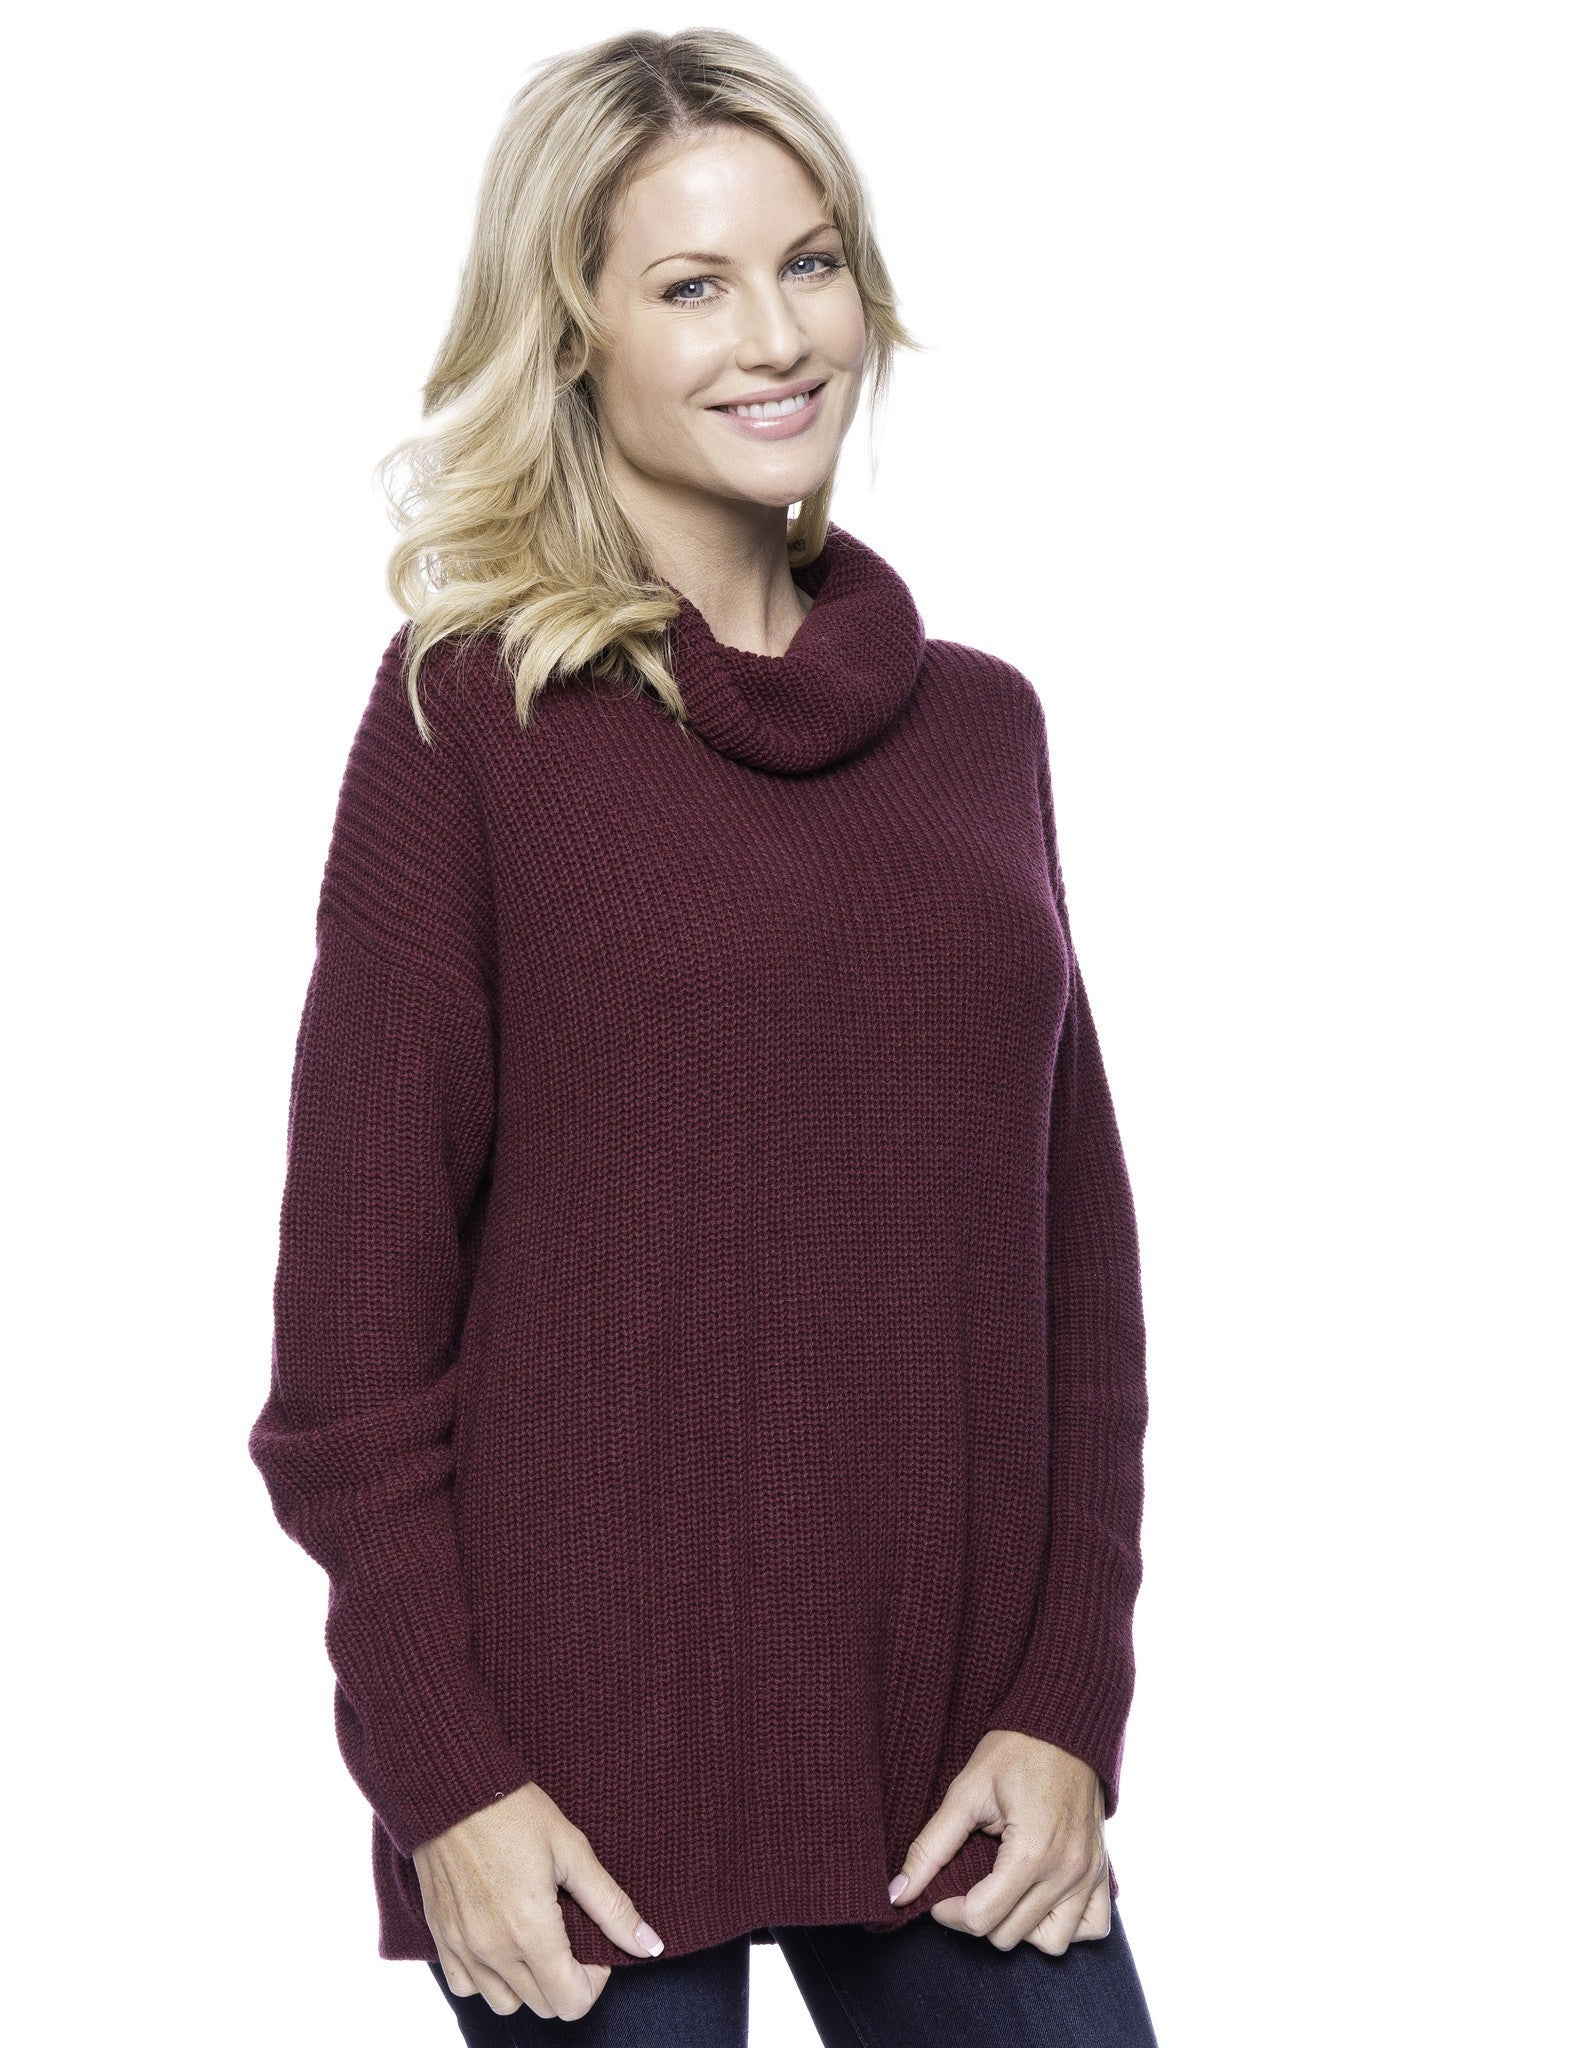 Tocco Reale Women's Cashmere Blend Cowl Neck Sweater